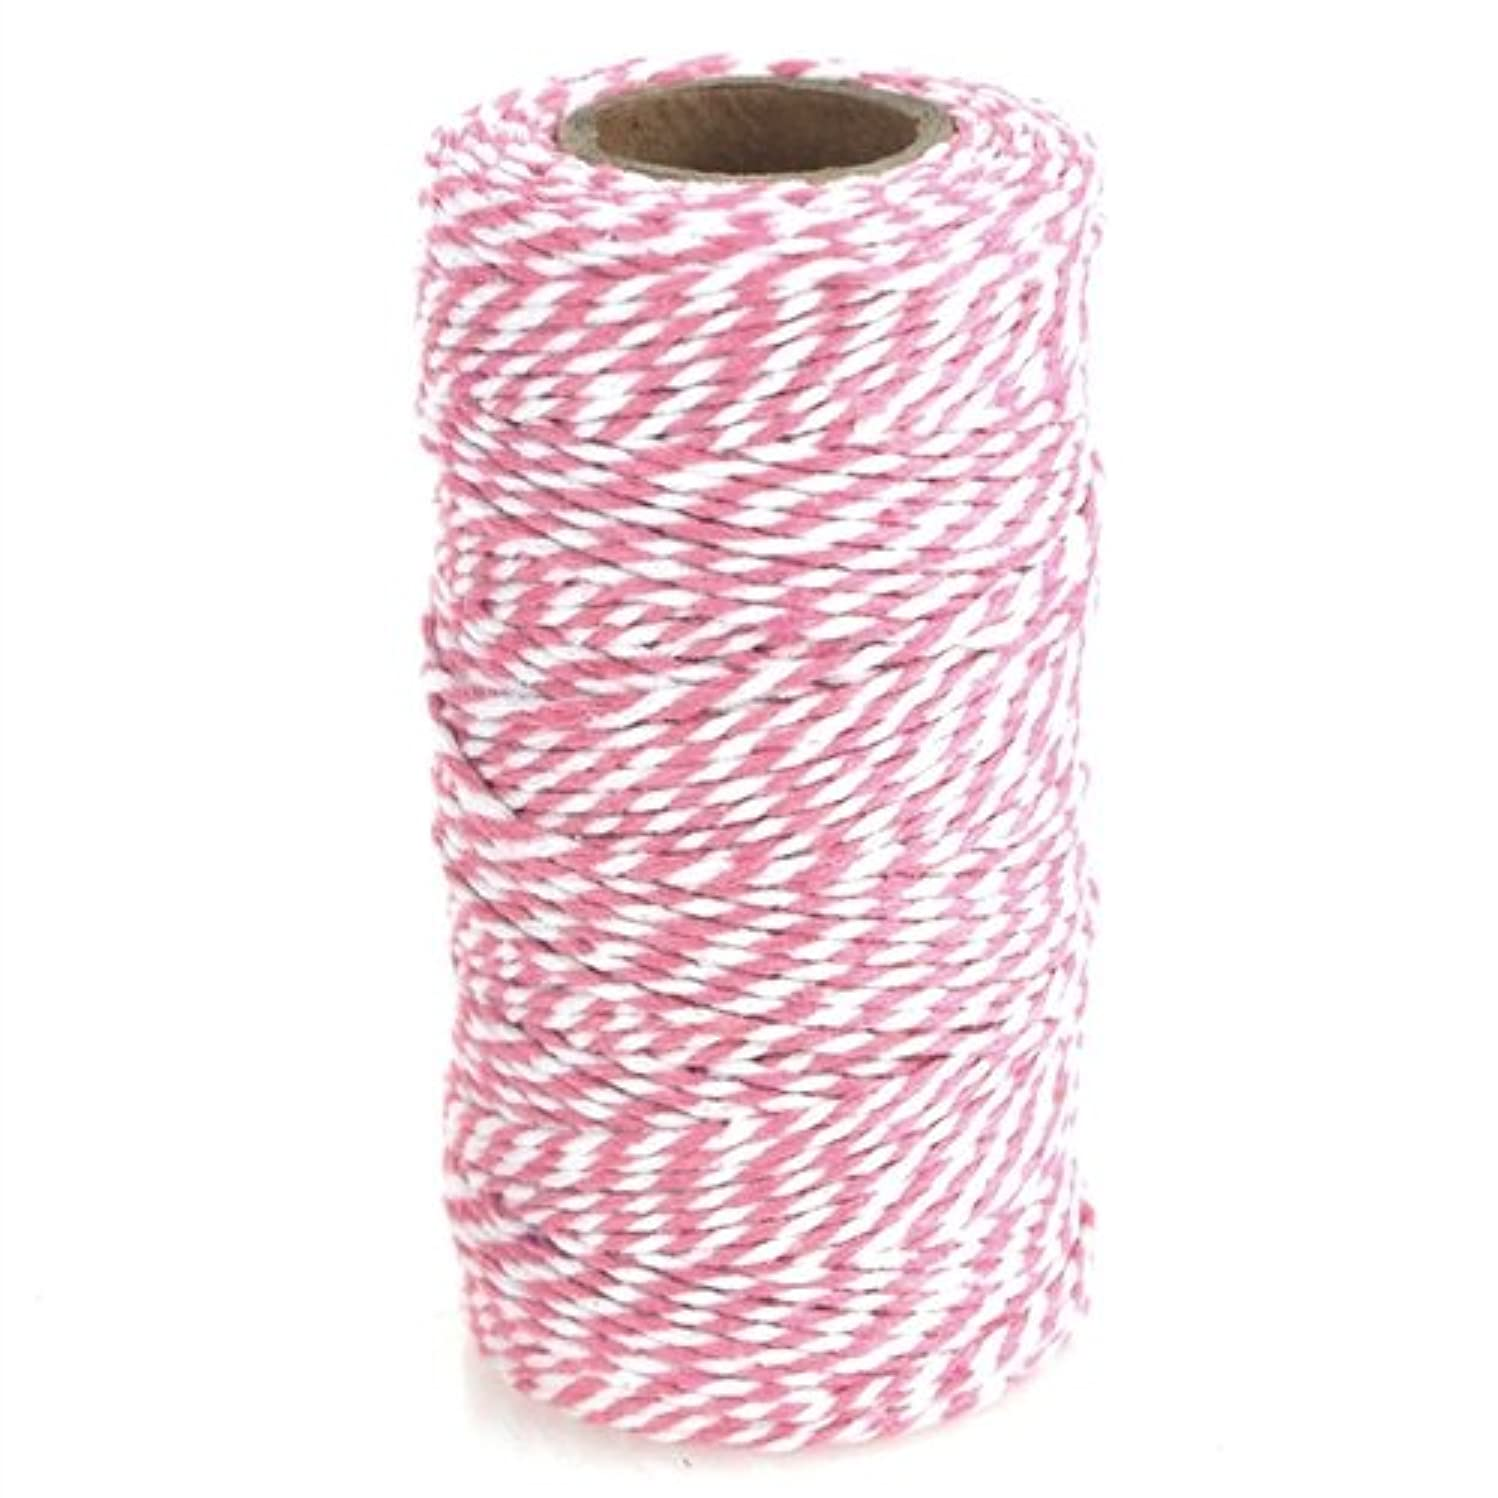 Homeford Firefly Imports Cotton Bakers Twine Ribbon, 10-Ply, 100 Yards, Pink,